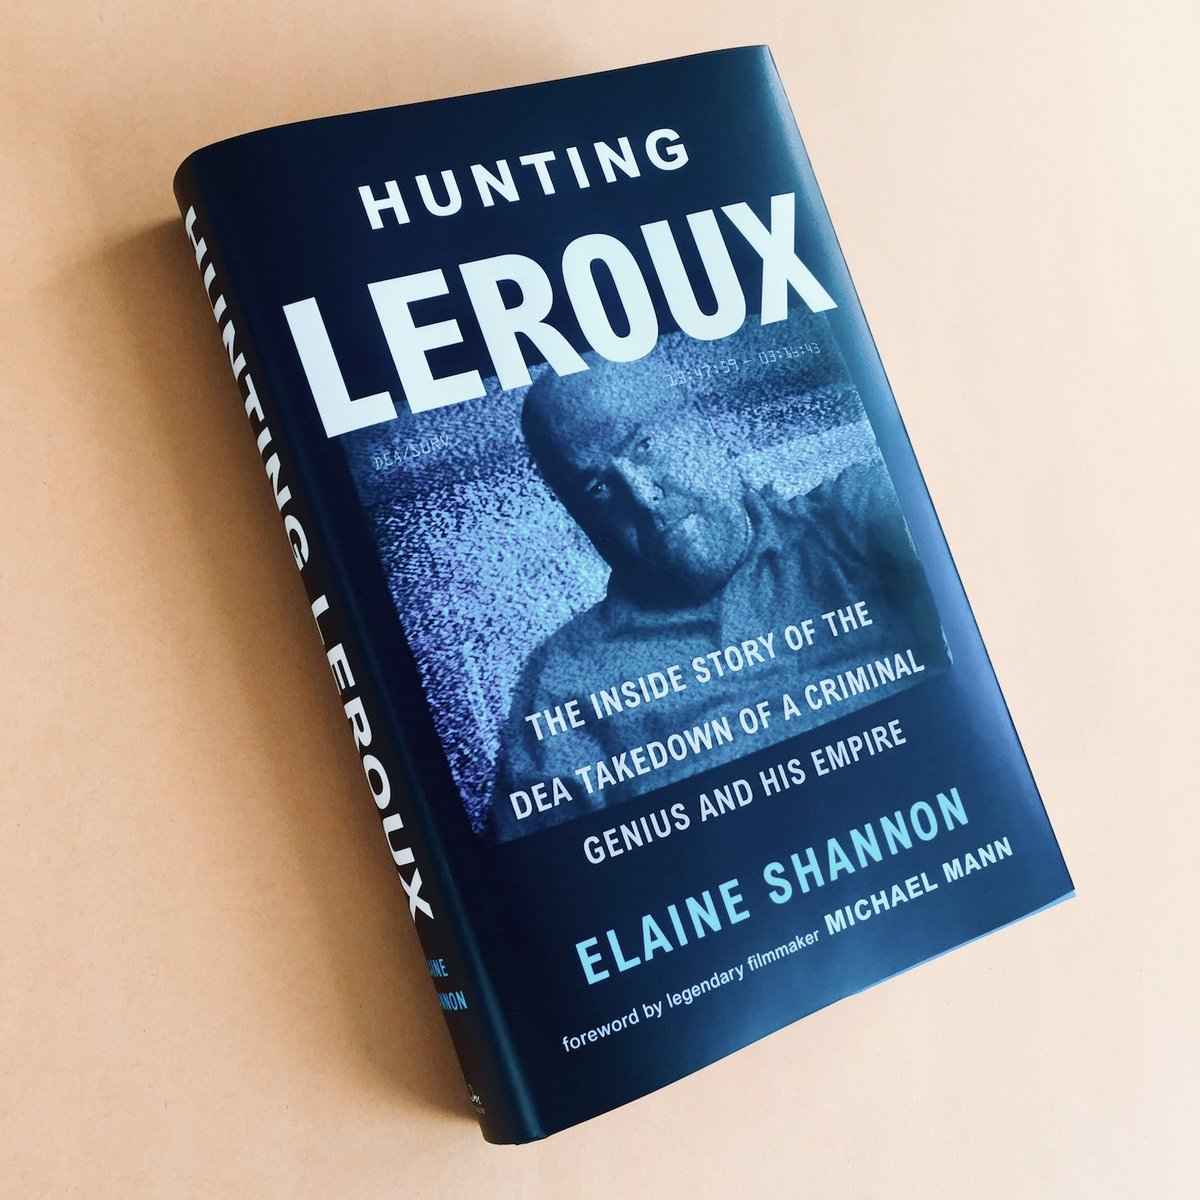 Discover the story of Paul LeRoux, the twisted-genius entrepreneur and cold-blooded killer who brought revolutionary innovation to international crime, & the exclusive inside story of how the DEA brought him down.  HUNTING LEROUX is now on sale: http://bit.ly/2GOtNJ2